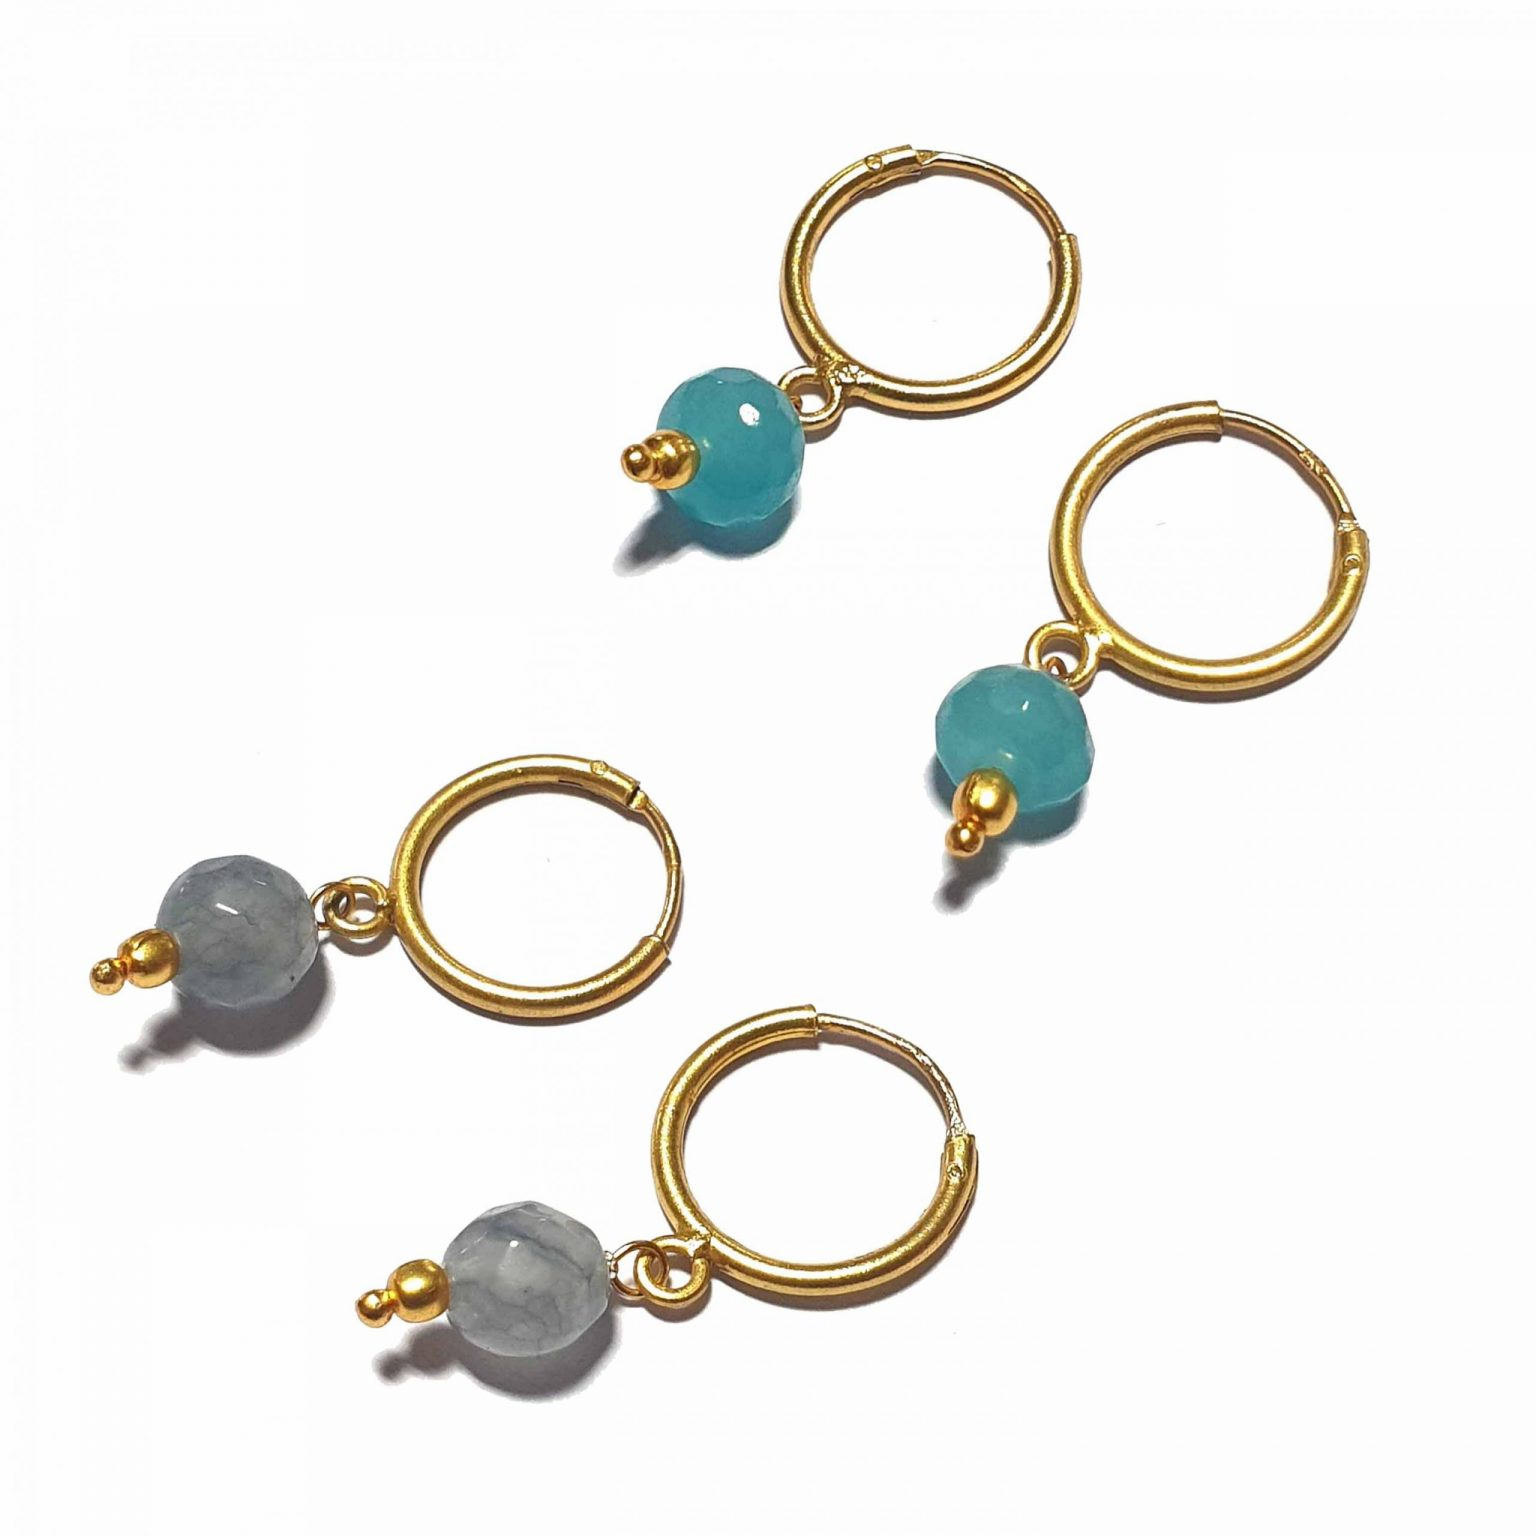 Silver Bali Set of 2 Combo with Grey Chalcedony and Blue Chalcedony Gold Polished Bali in Pure Silver 925   Earrings for Women